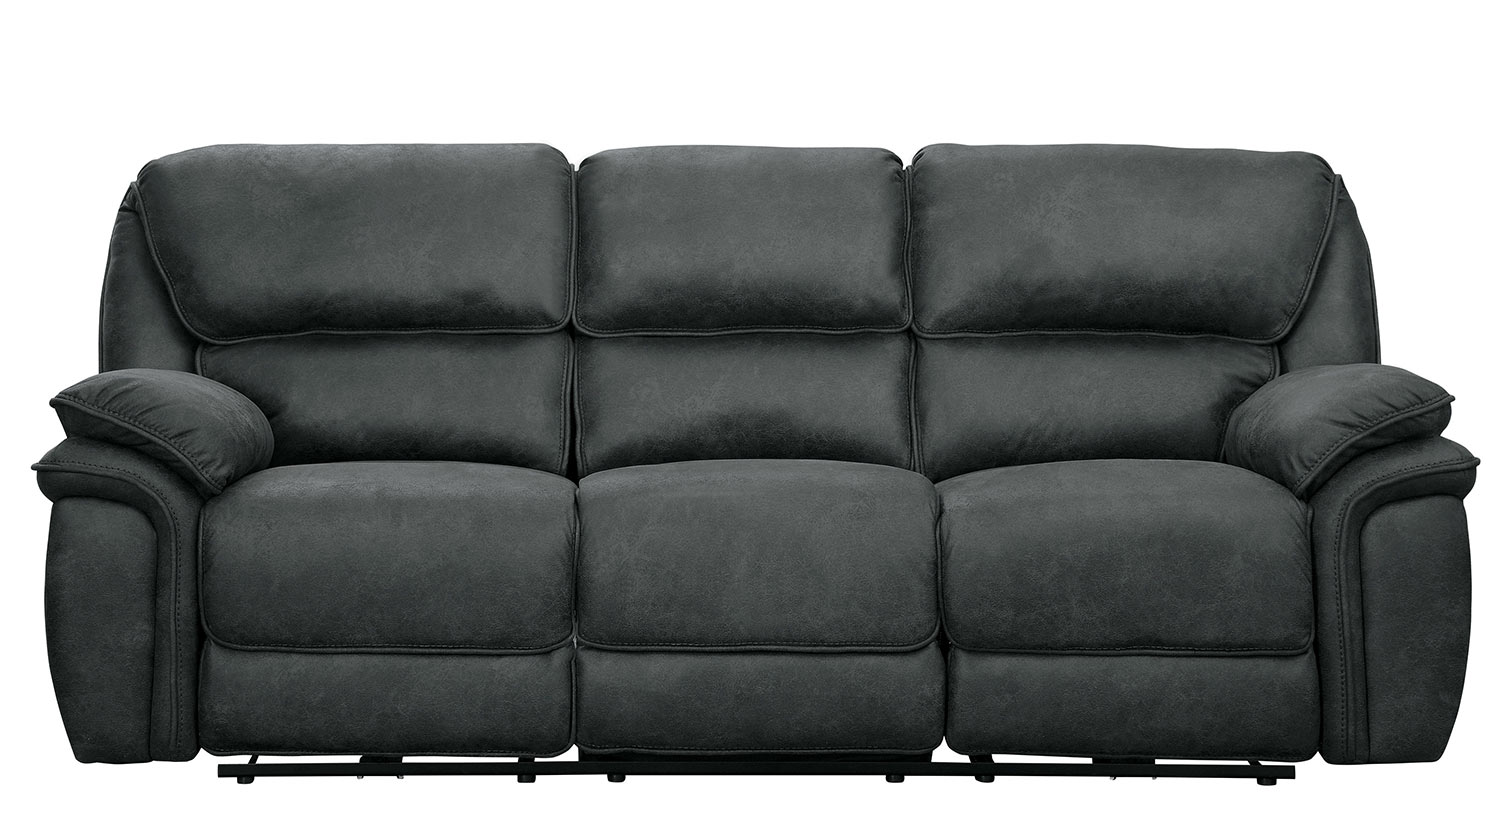 Homelegance Hadden Reclining Sofa Set - Gray